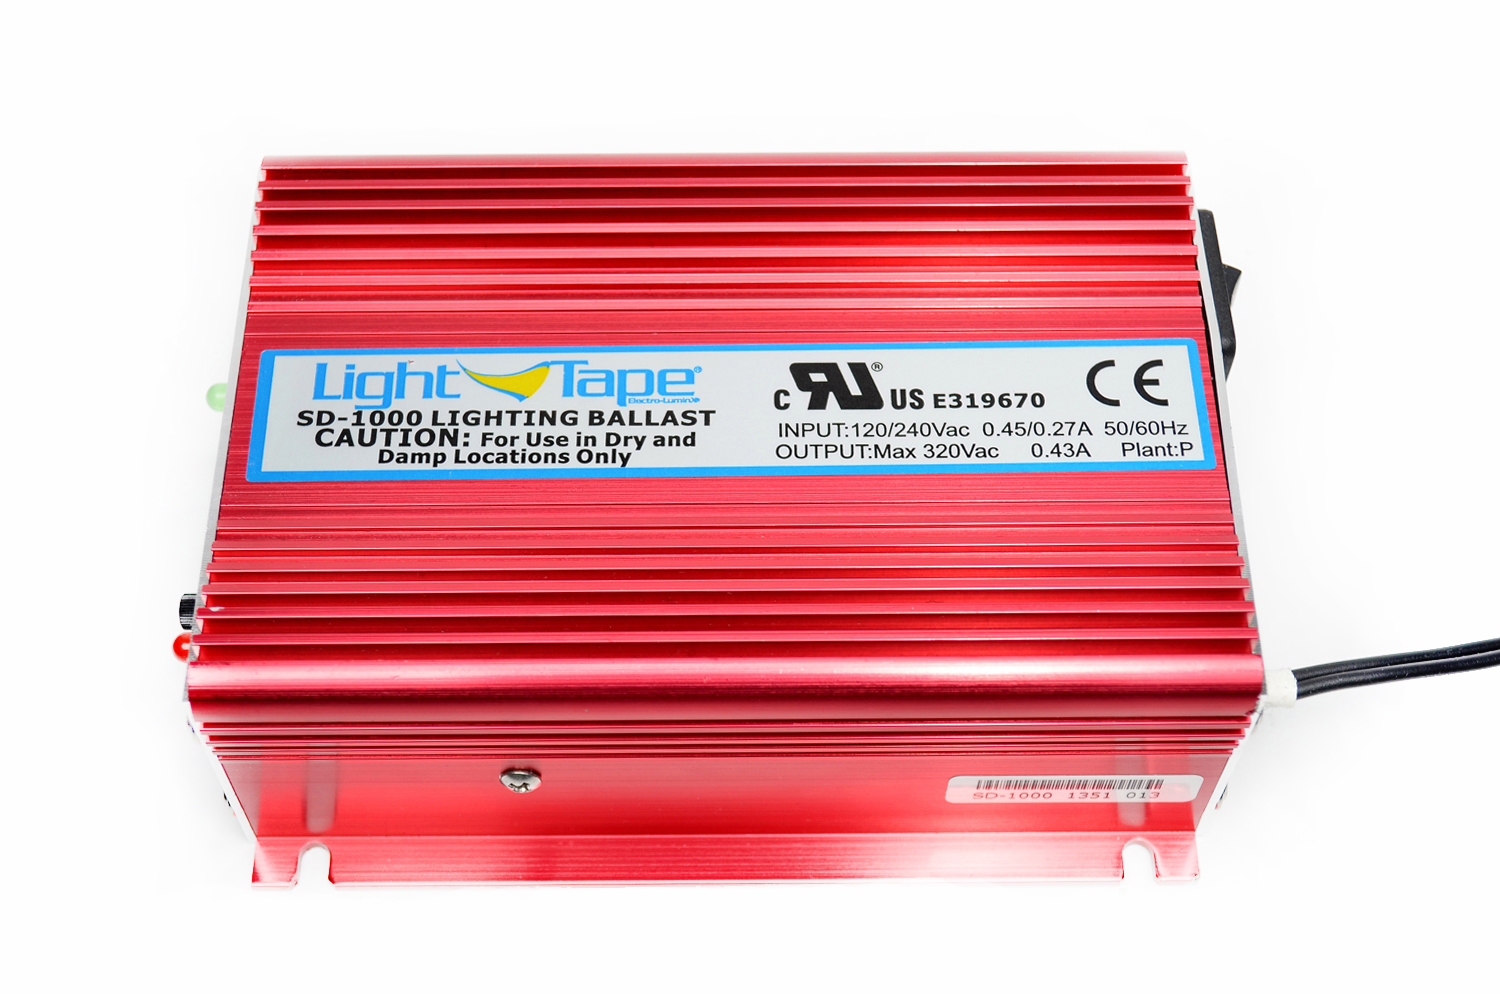 Model SD-1000  Illuminated Area:555-1410 sq. in. Input Current:450-700 mA Input Voltage: 120 or 240 VAC Input Frequency: 50/60 Hz Output Voltage: 200 -300 V Output Frequency:600-900 Hz